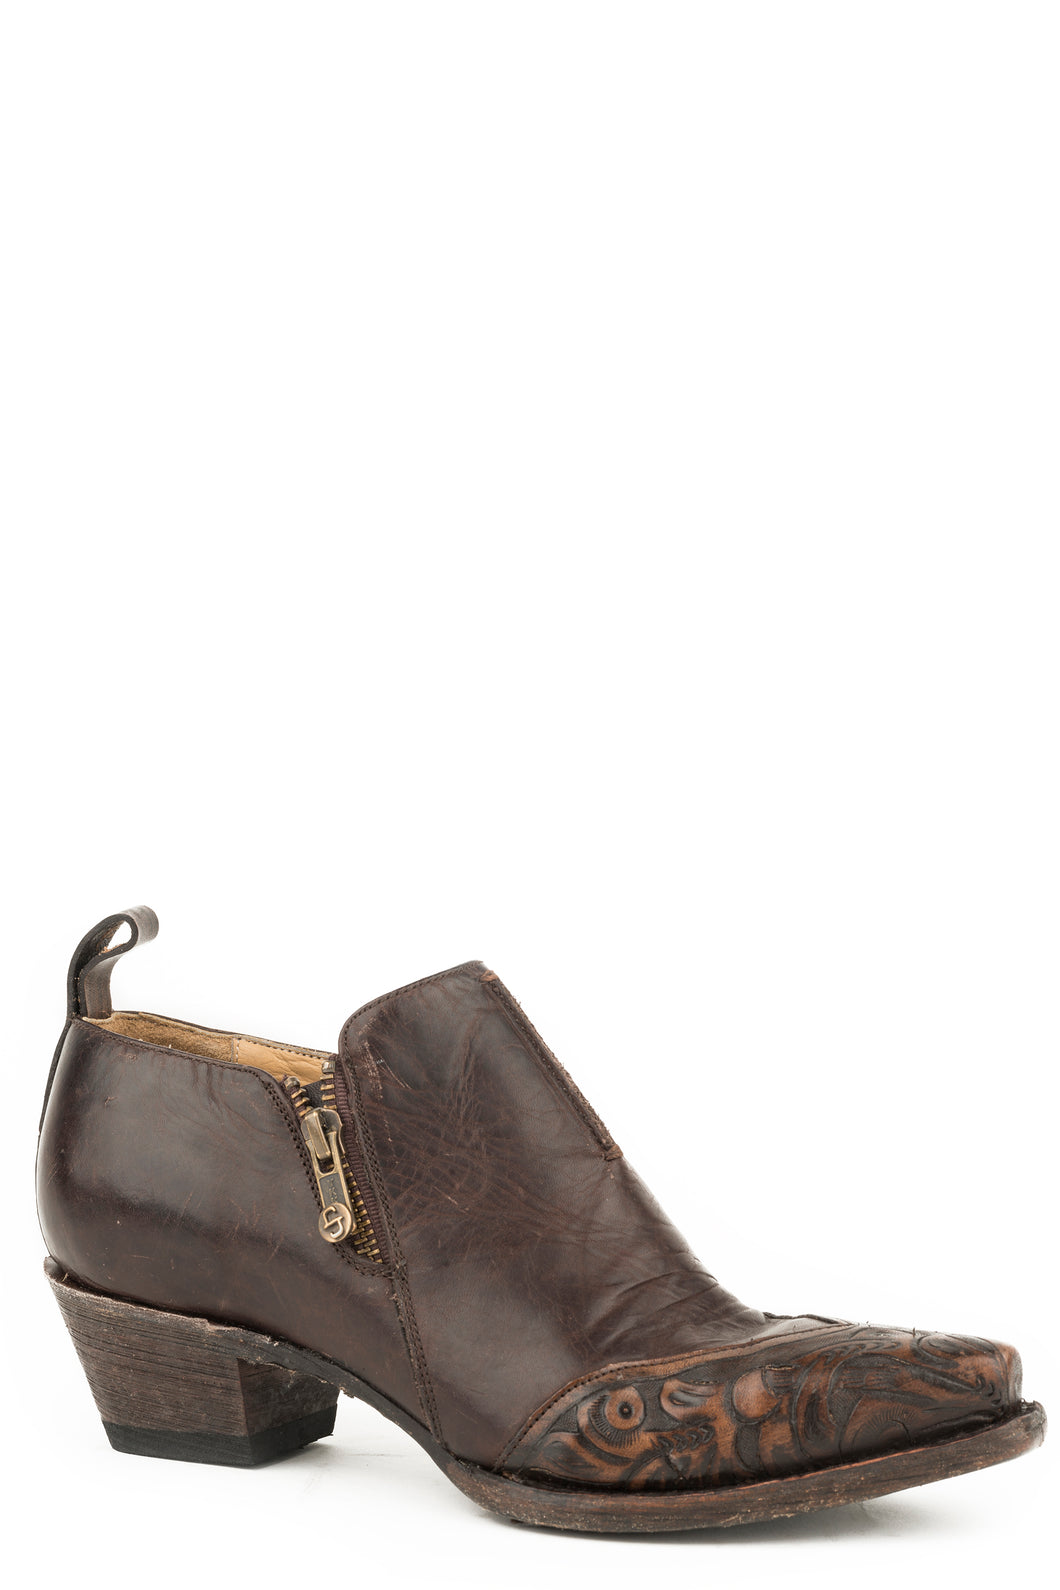 Phoebe Boot Womens Boots Brown Vamp And 3